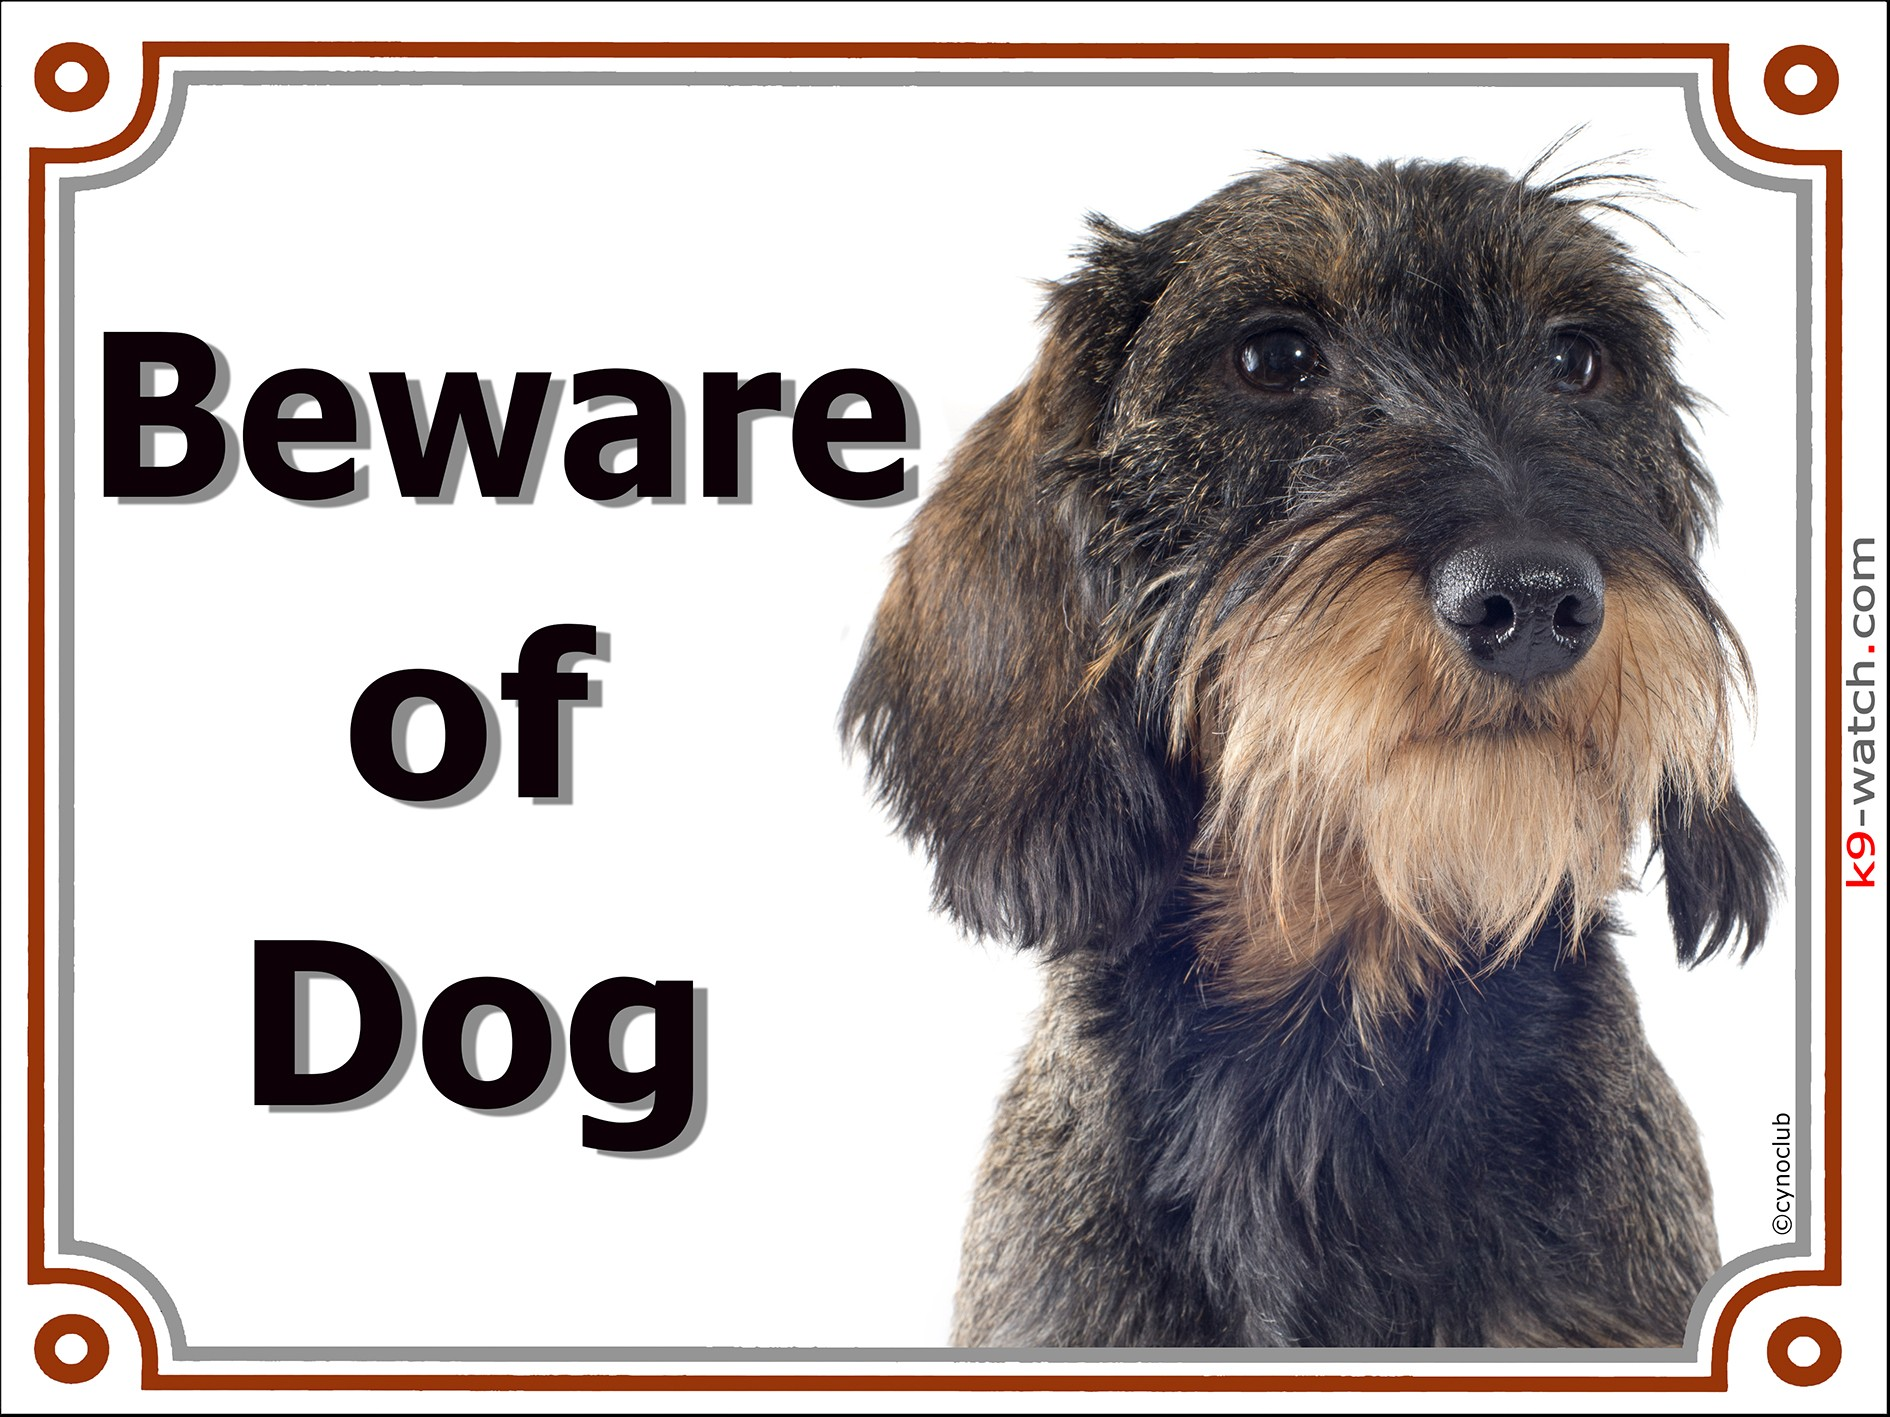 wild-boar wirehaired Dachshund head, Gate Sign Beware of Dog plaque placard  panel